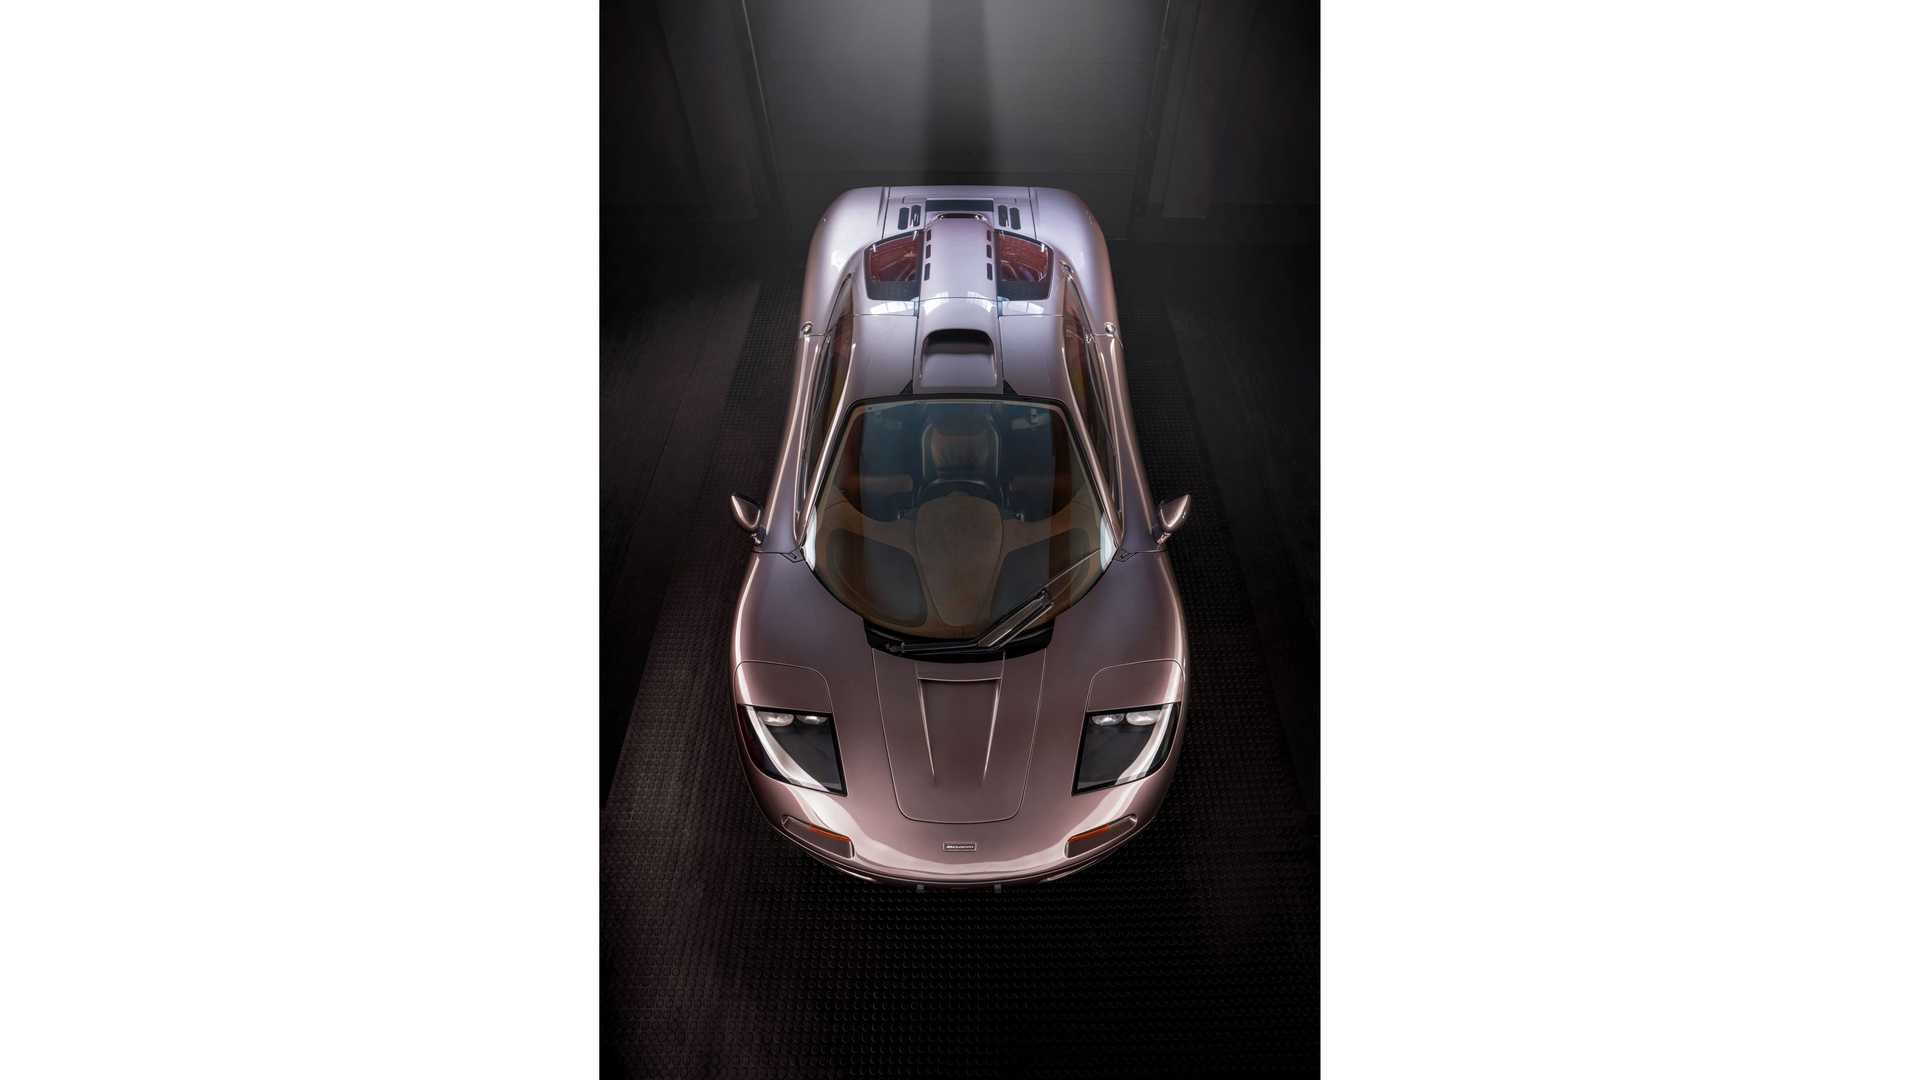 1995 McLaren F1 Gooding And Company Auction 2020 Above